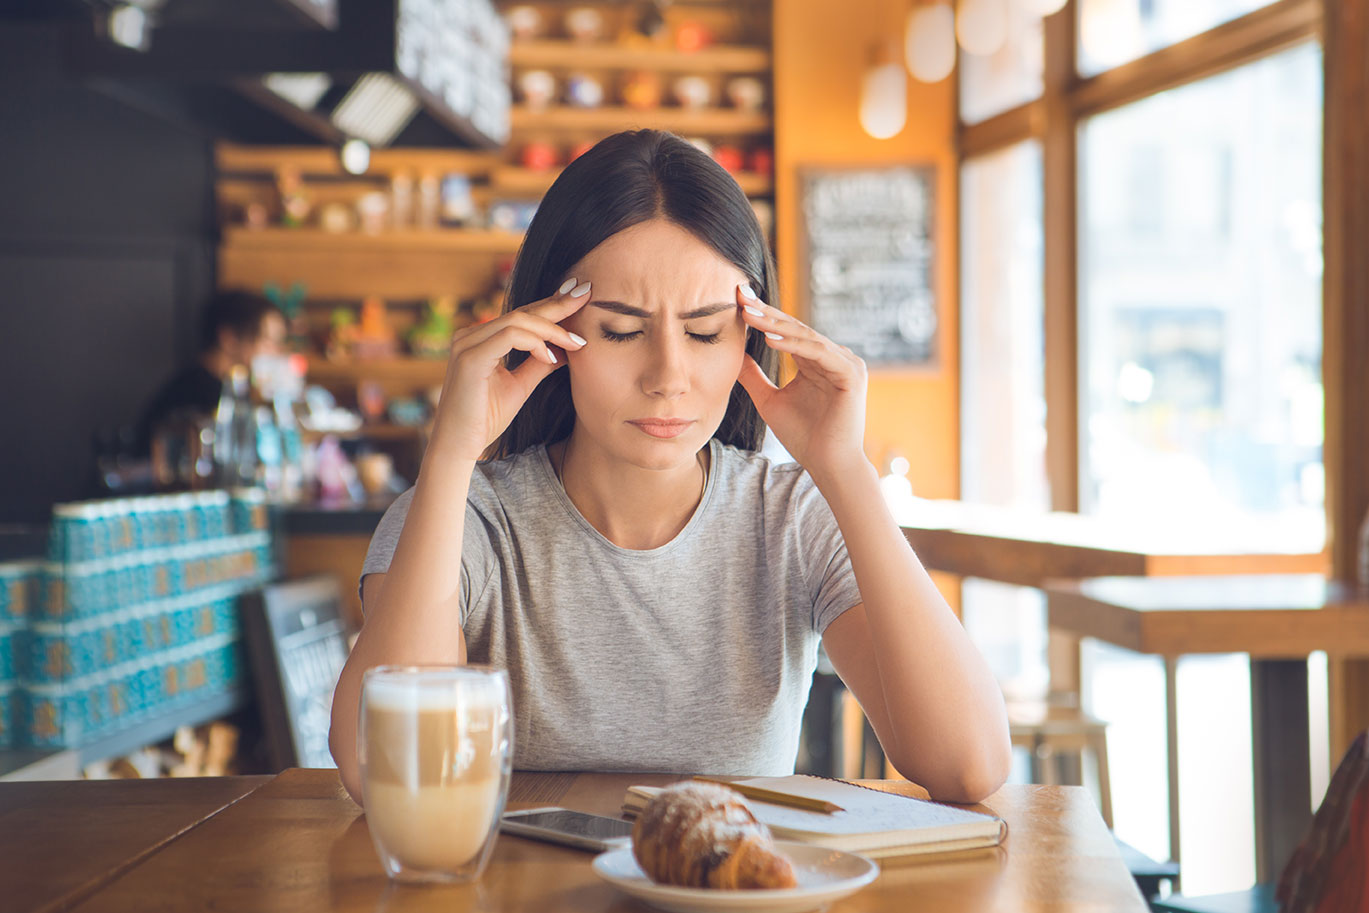 Headaches: the role your diet plays